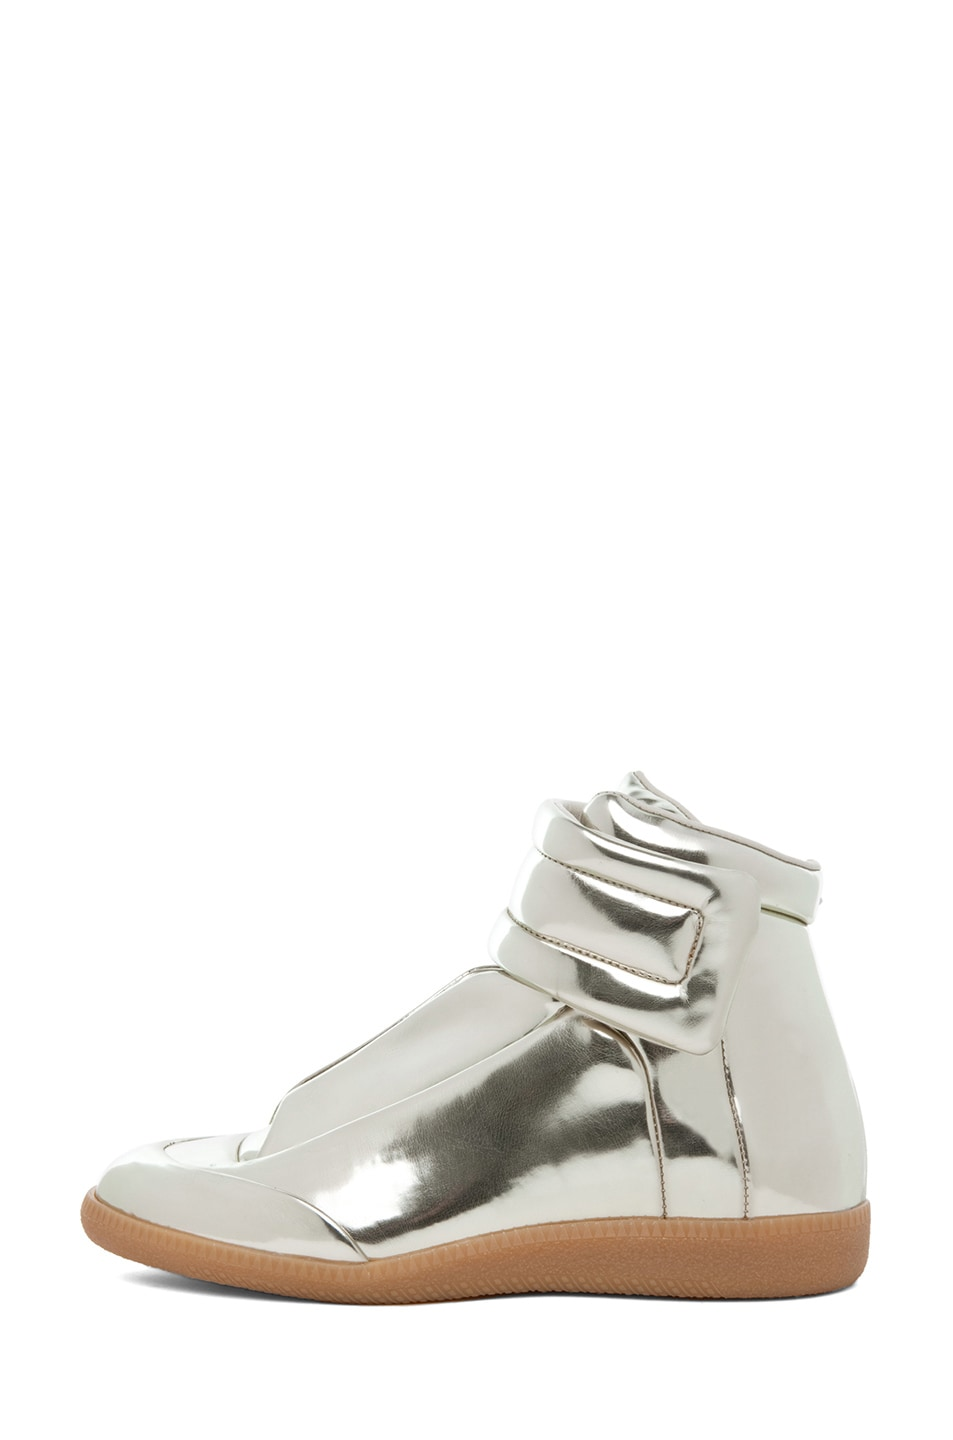 Image 1 of Maison Margiela Hi Top Sneaker in Gold